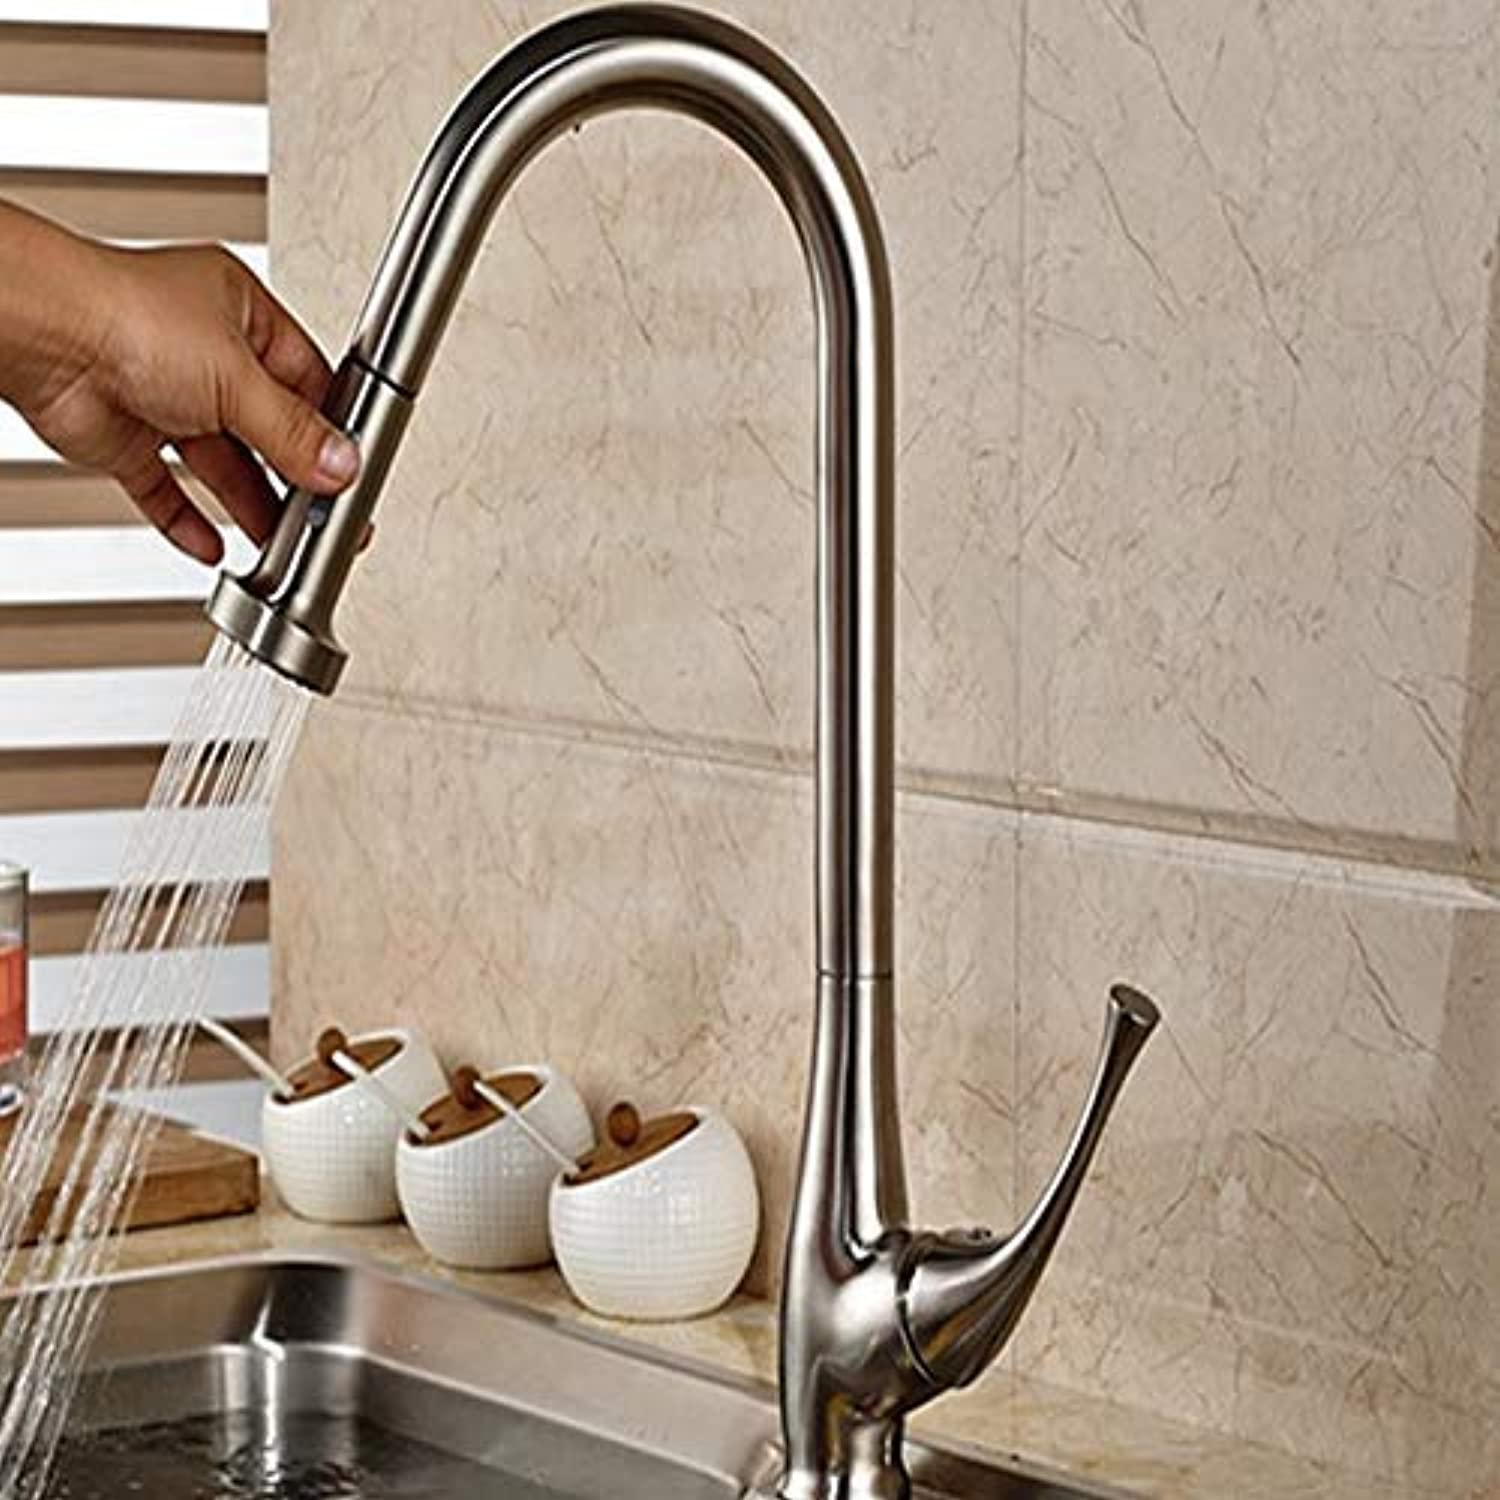 Wholesale and Retail Elegant Nickel Brushed Pulling Out Kitchen Faucet Single Handle Hole Vanity Sink Mounted Mixer Deck (color   -, Size   -)